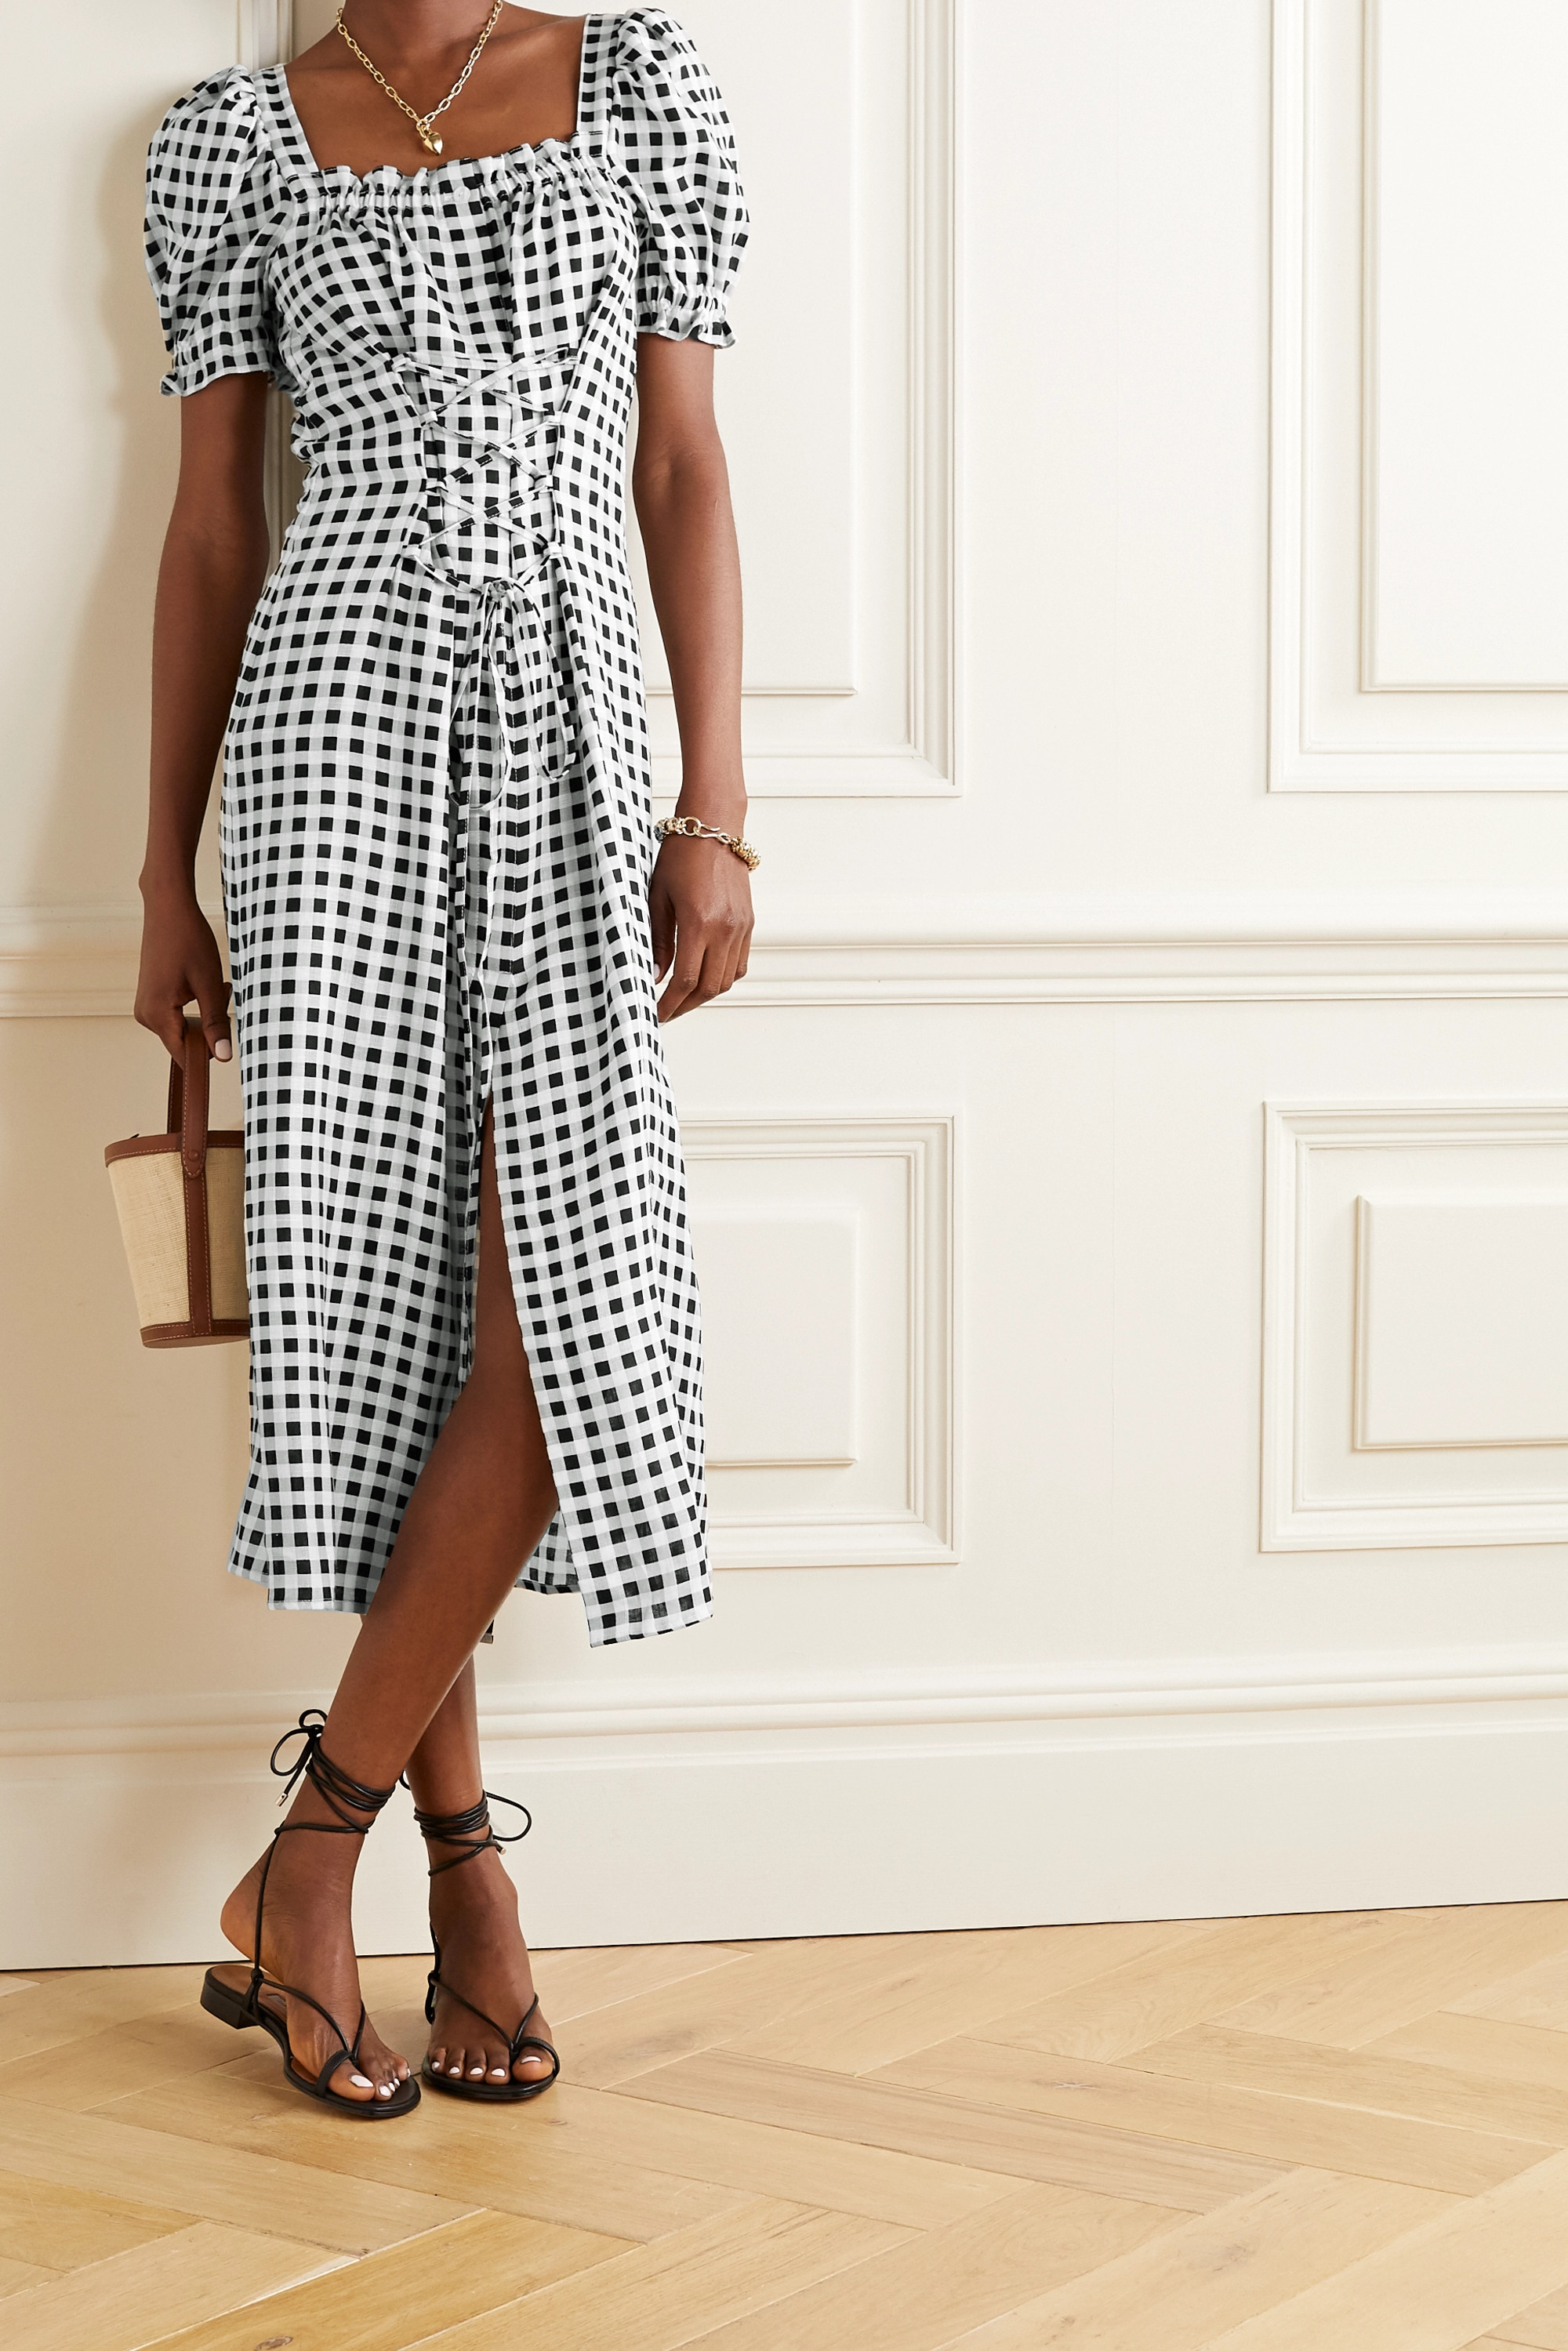 Sleeper Marquise lace-up gingham linen midi dress